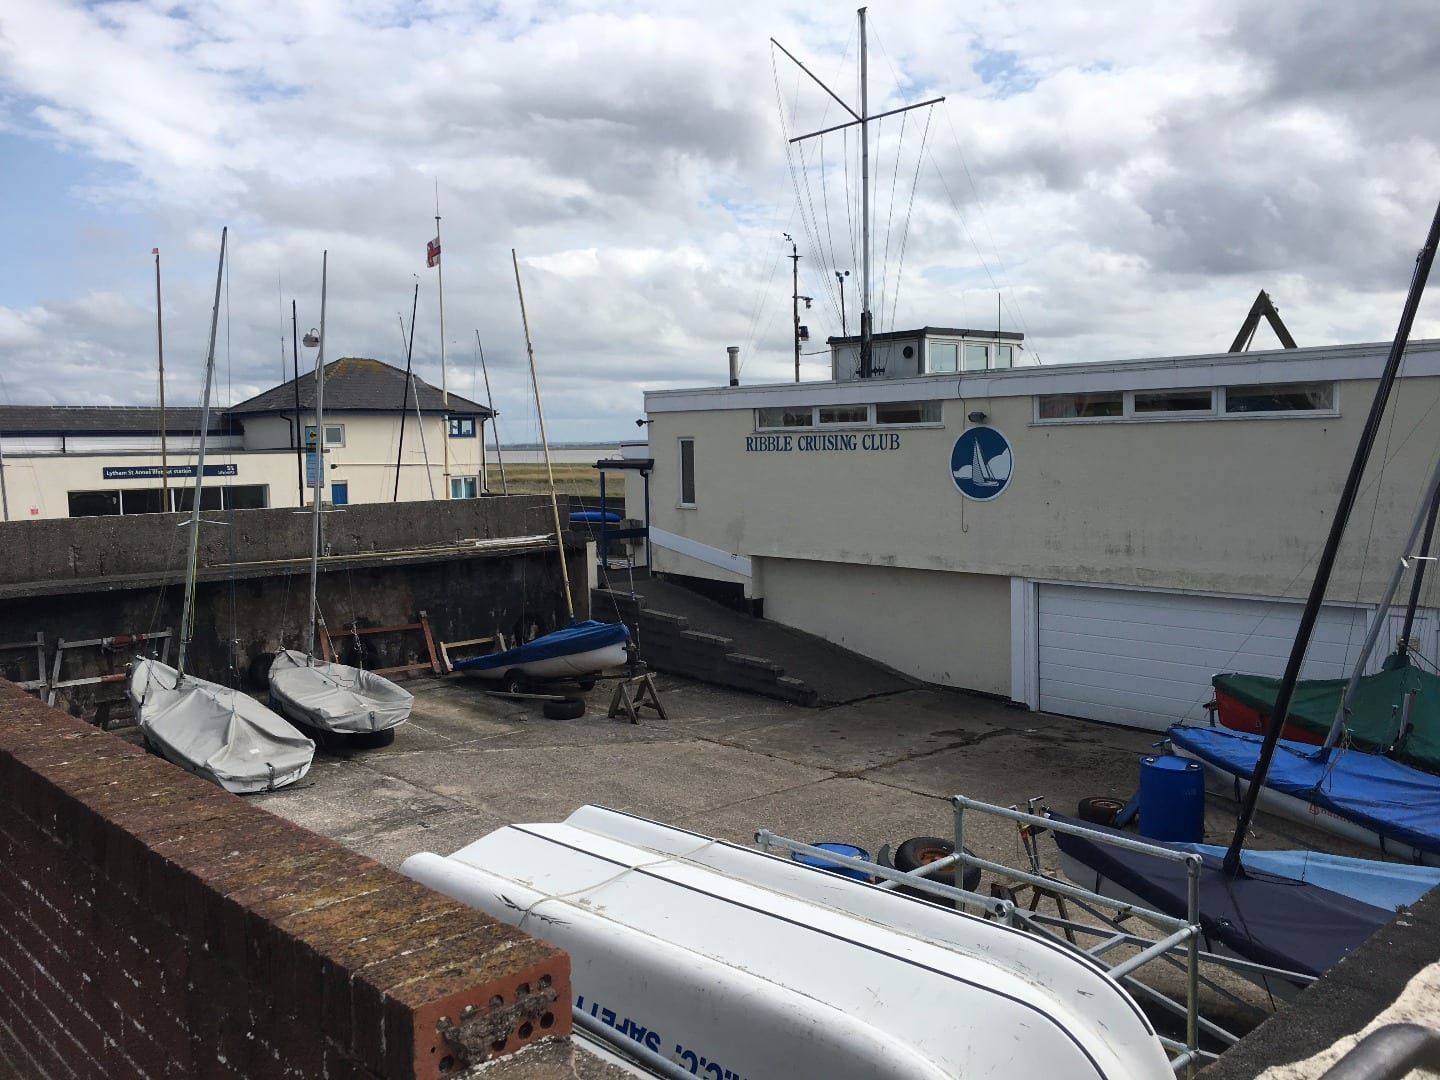 Ribble Cruising Club and RNLI, built on the former mussel tank